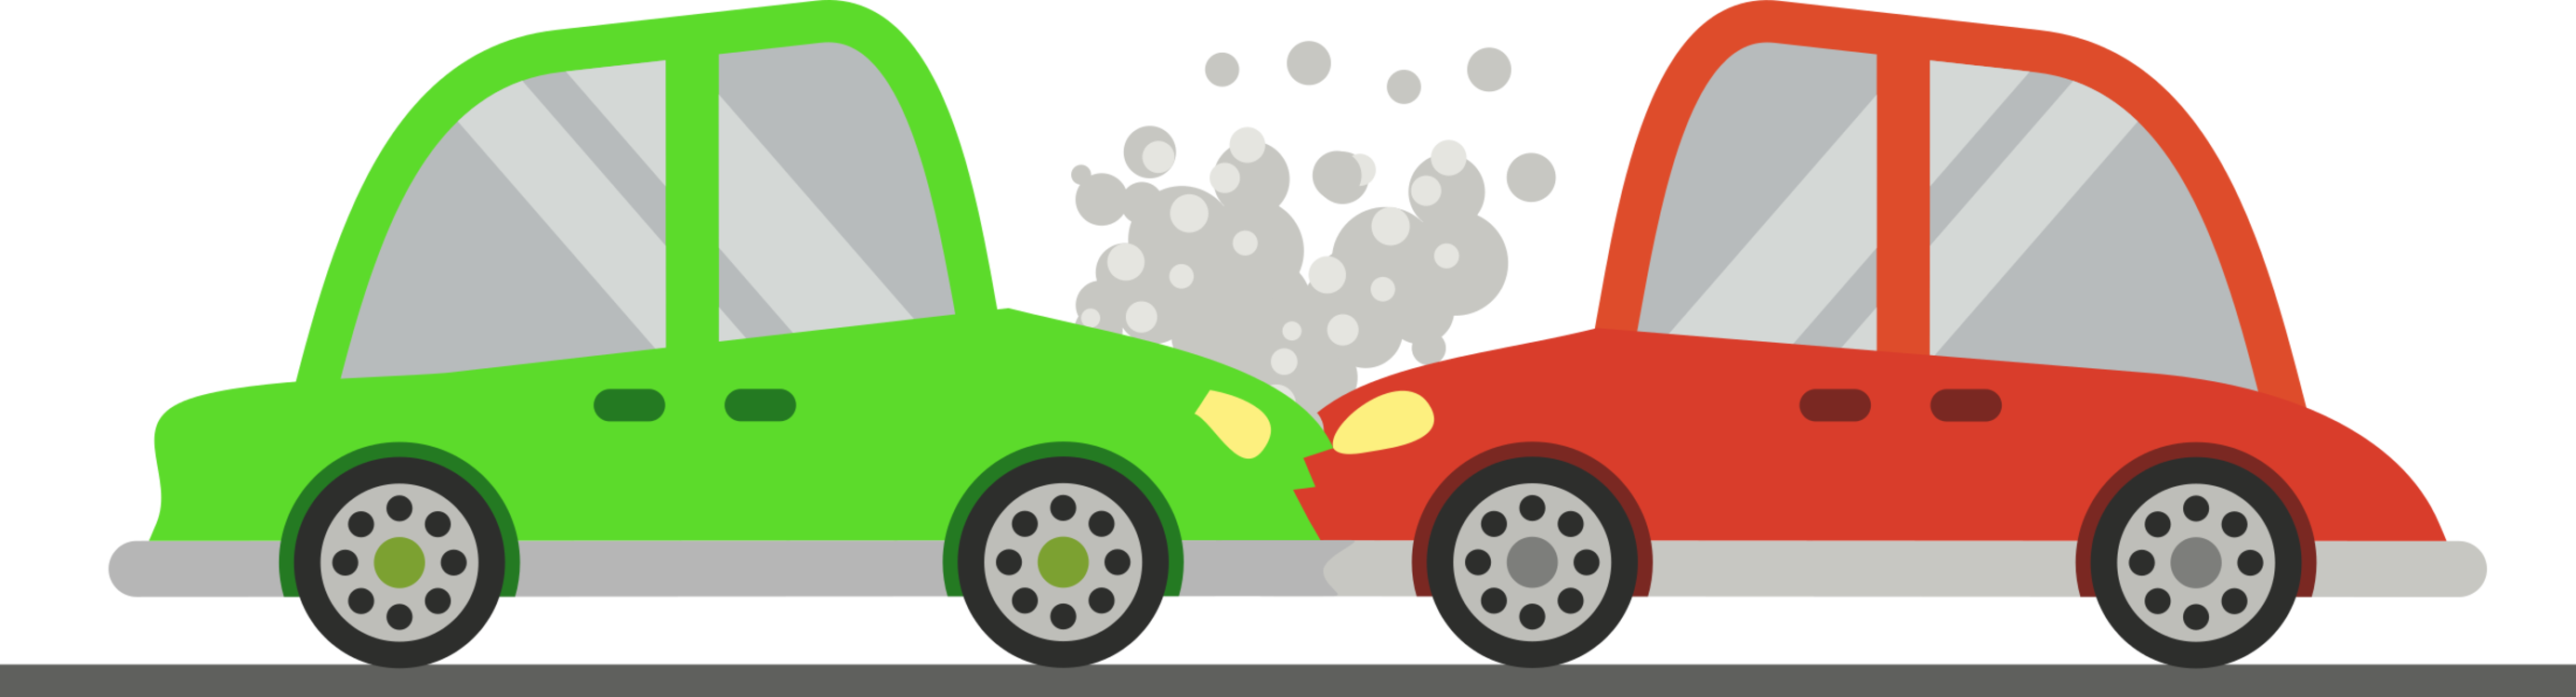 Compact traffic collision vehicle. Driving clipart small car png library library